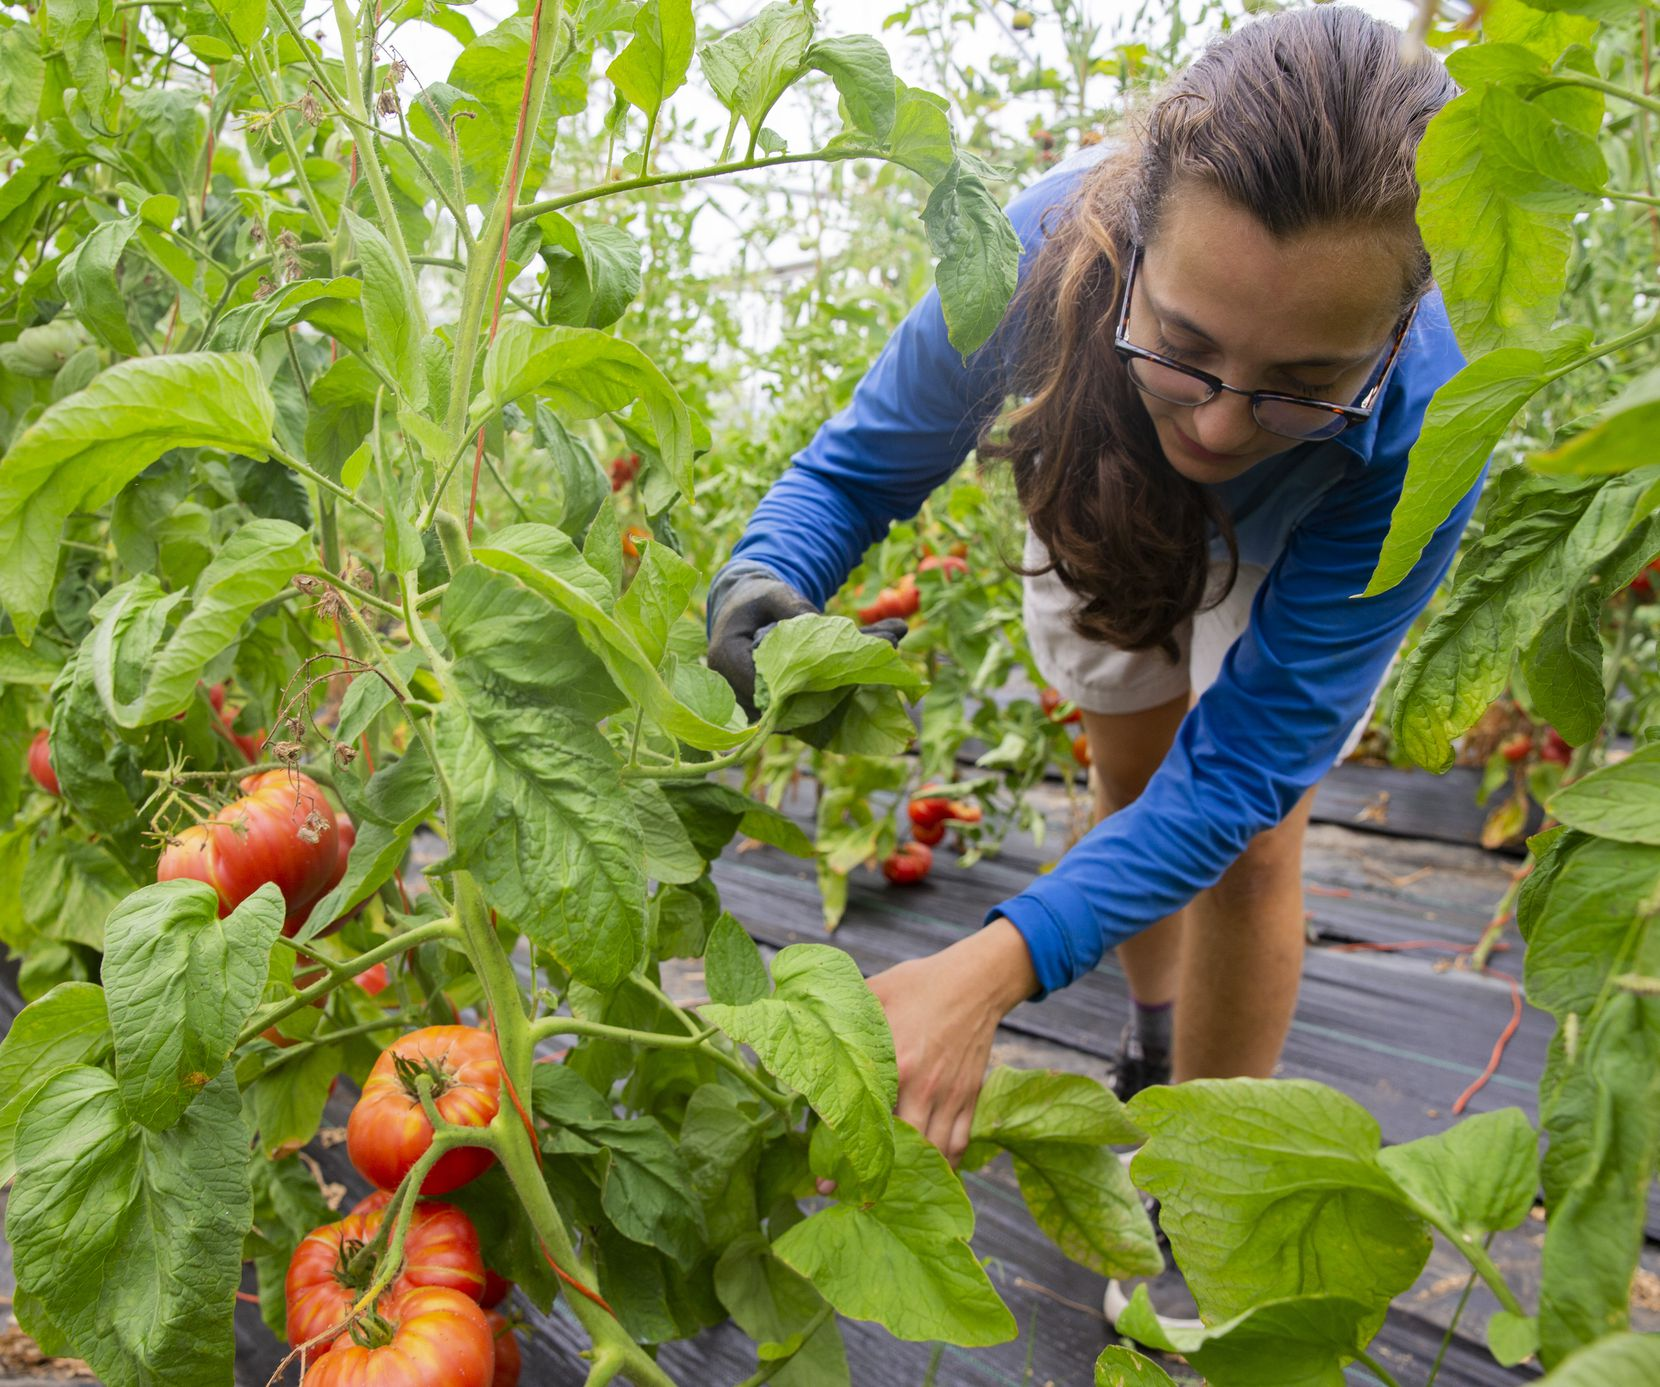 Master farm apprentice Allison Lopez-Bock tends the tomatoes at Misty Moon Farms in Argyle.